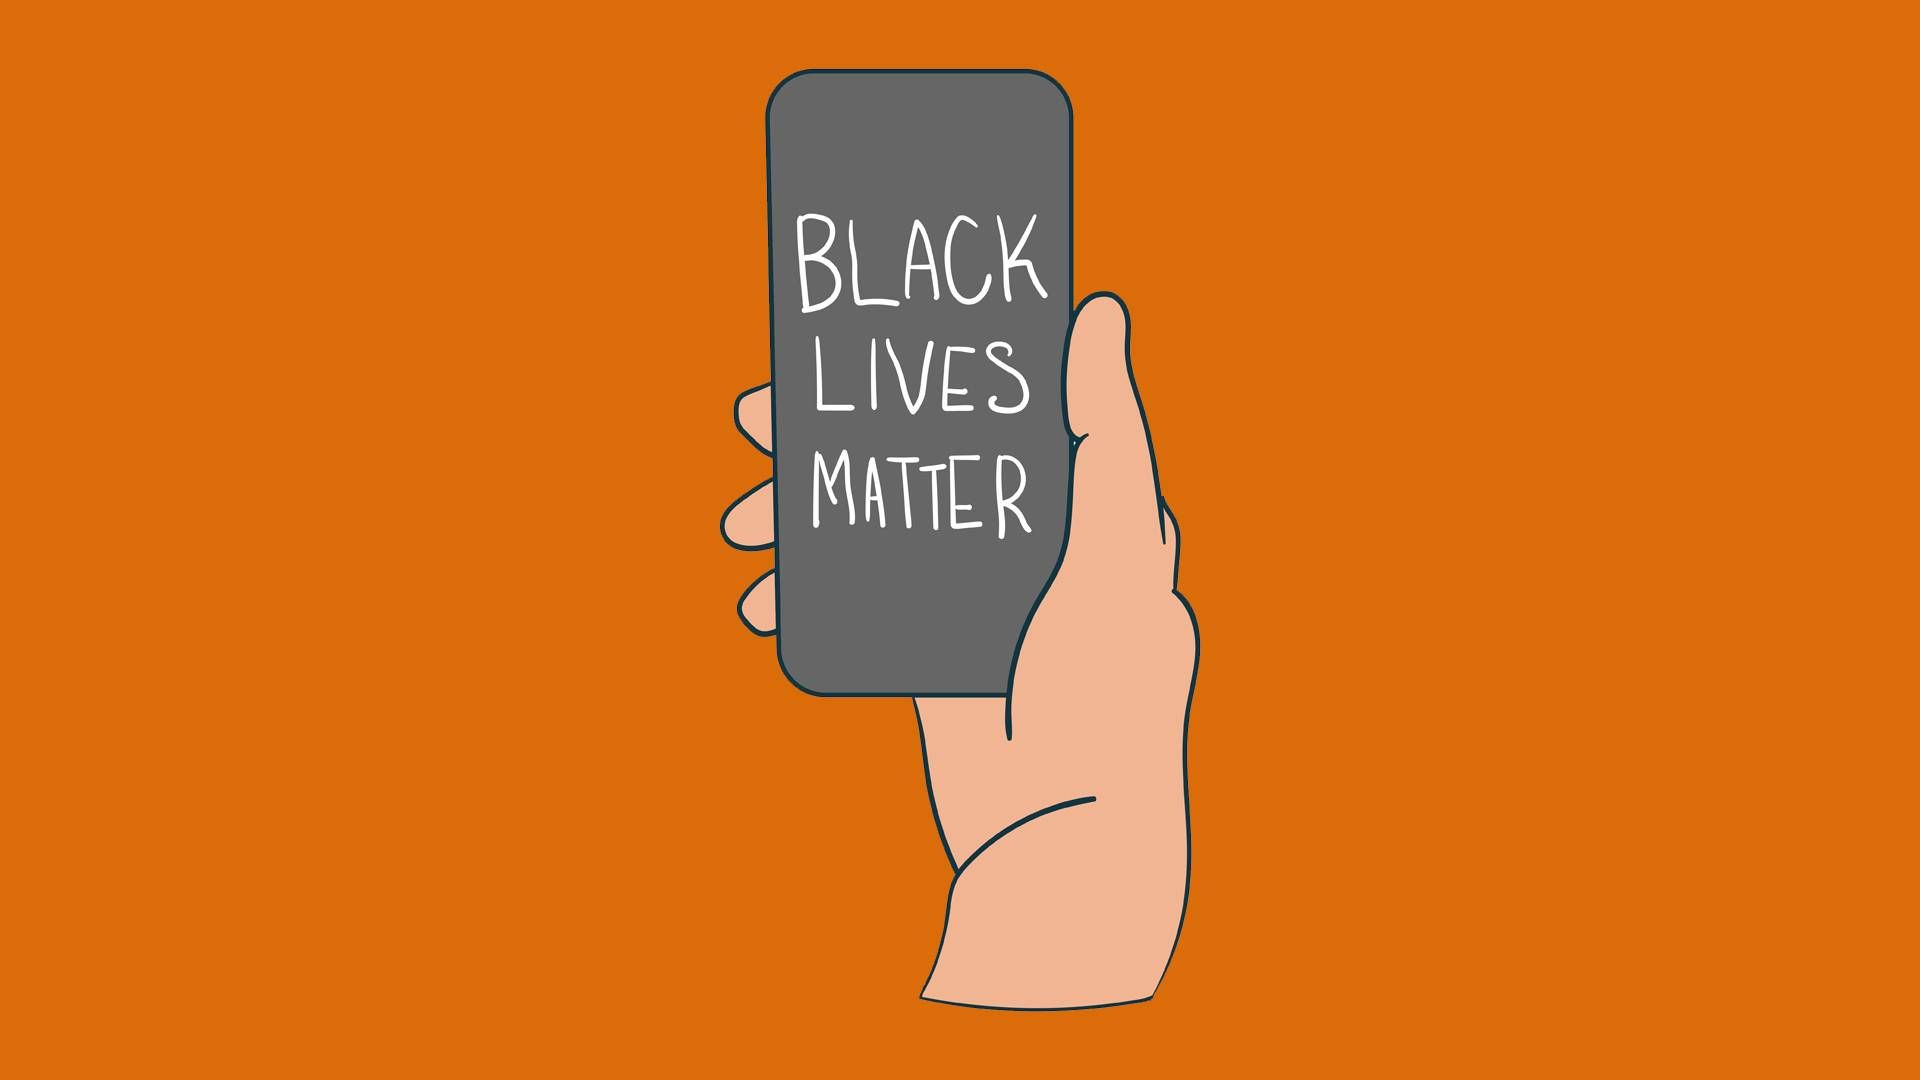 a hand holding a phone. rewire pbs our future performative activism